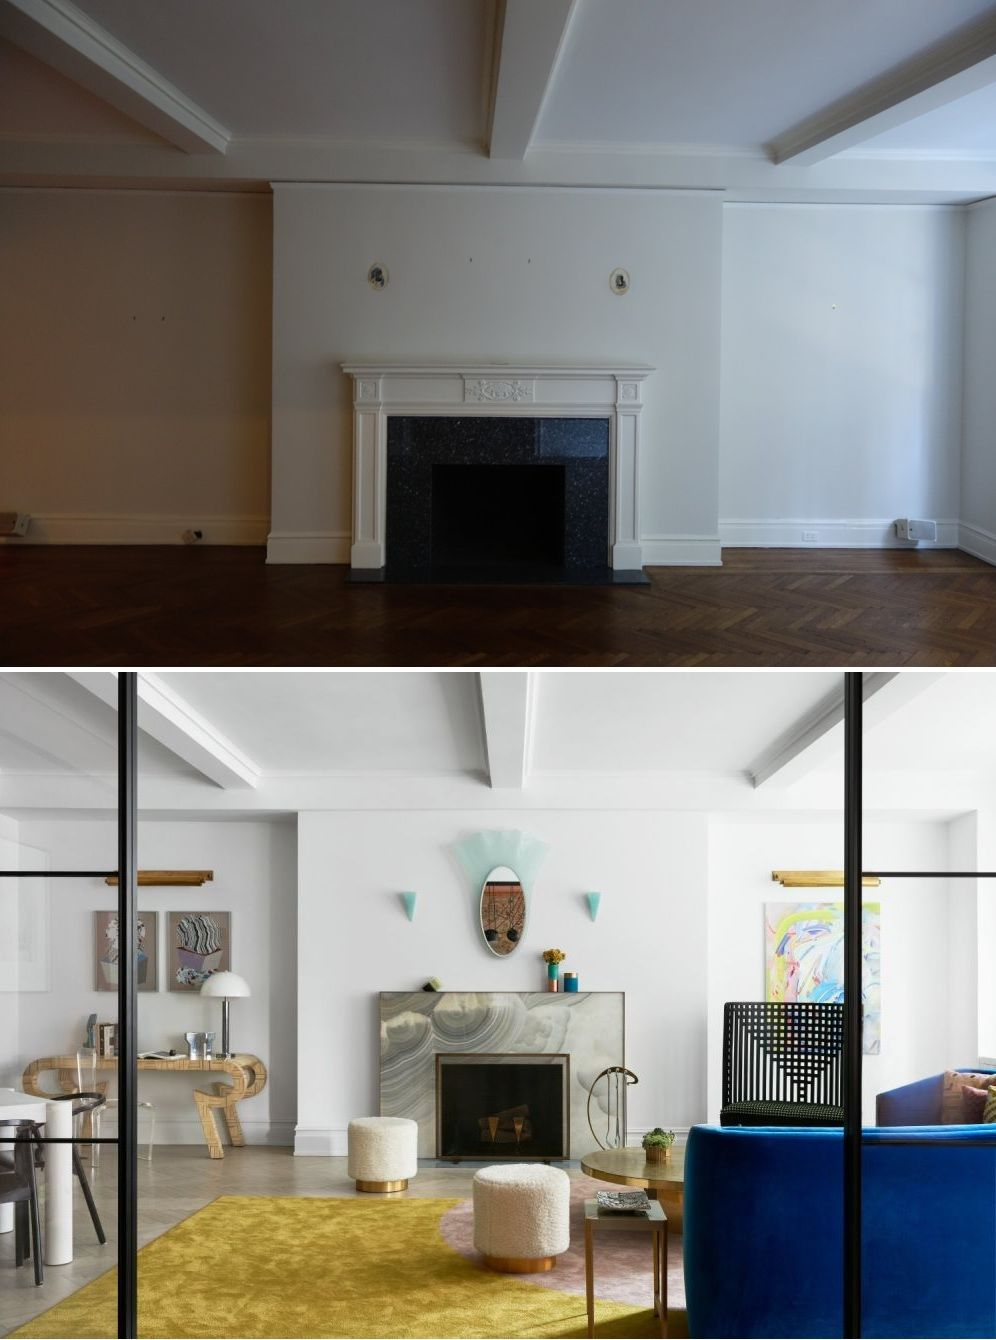 The living room features a fireplace which has been redesigned using modern materials and finishes